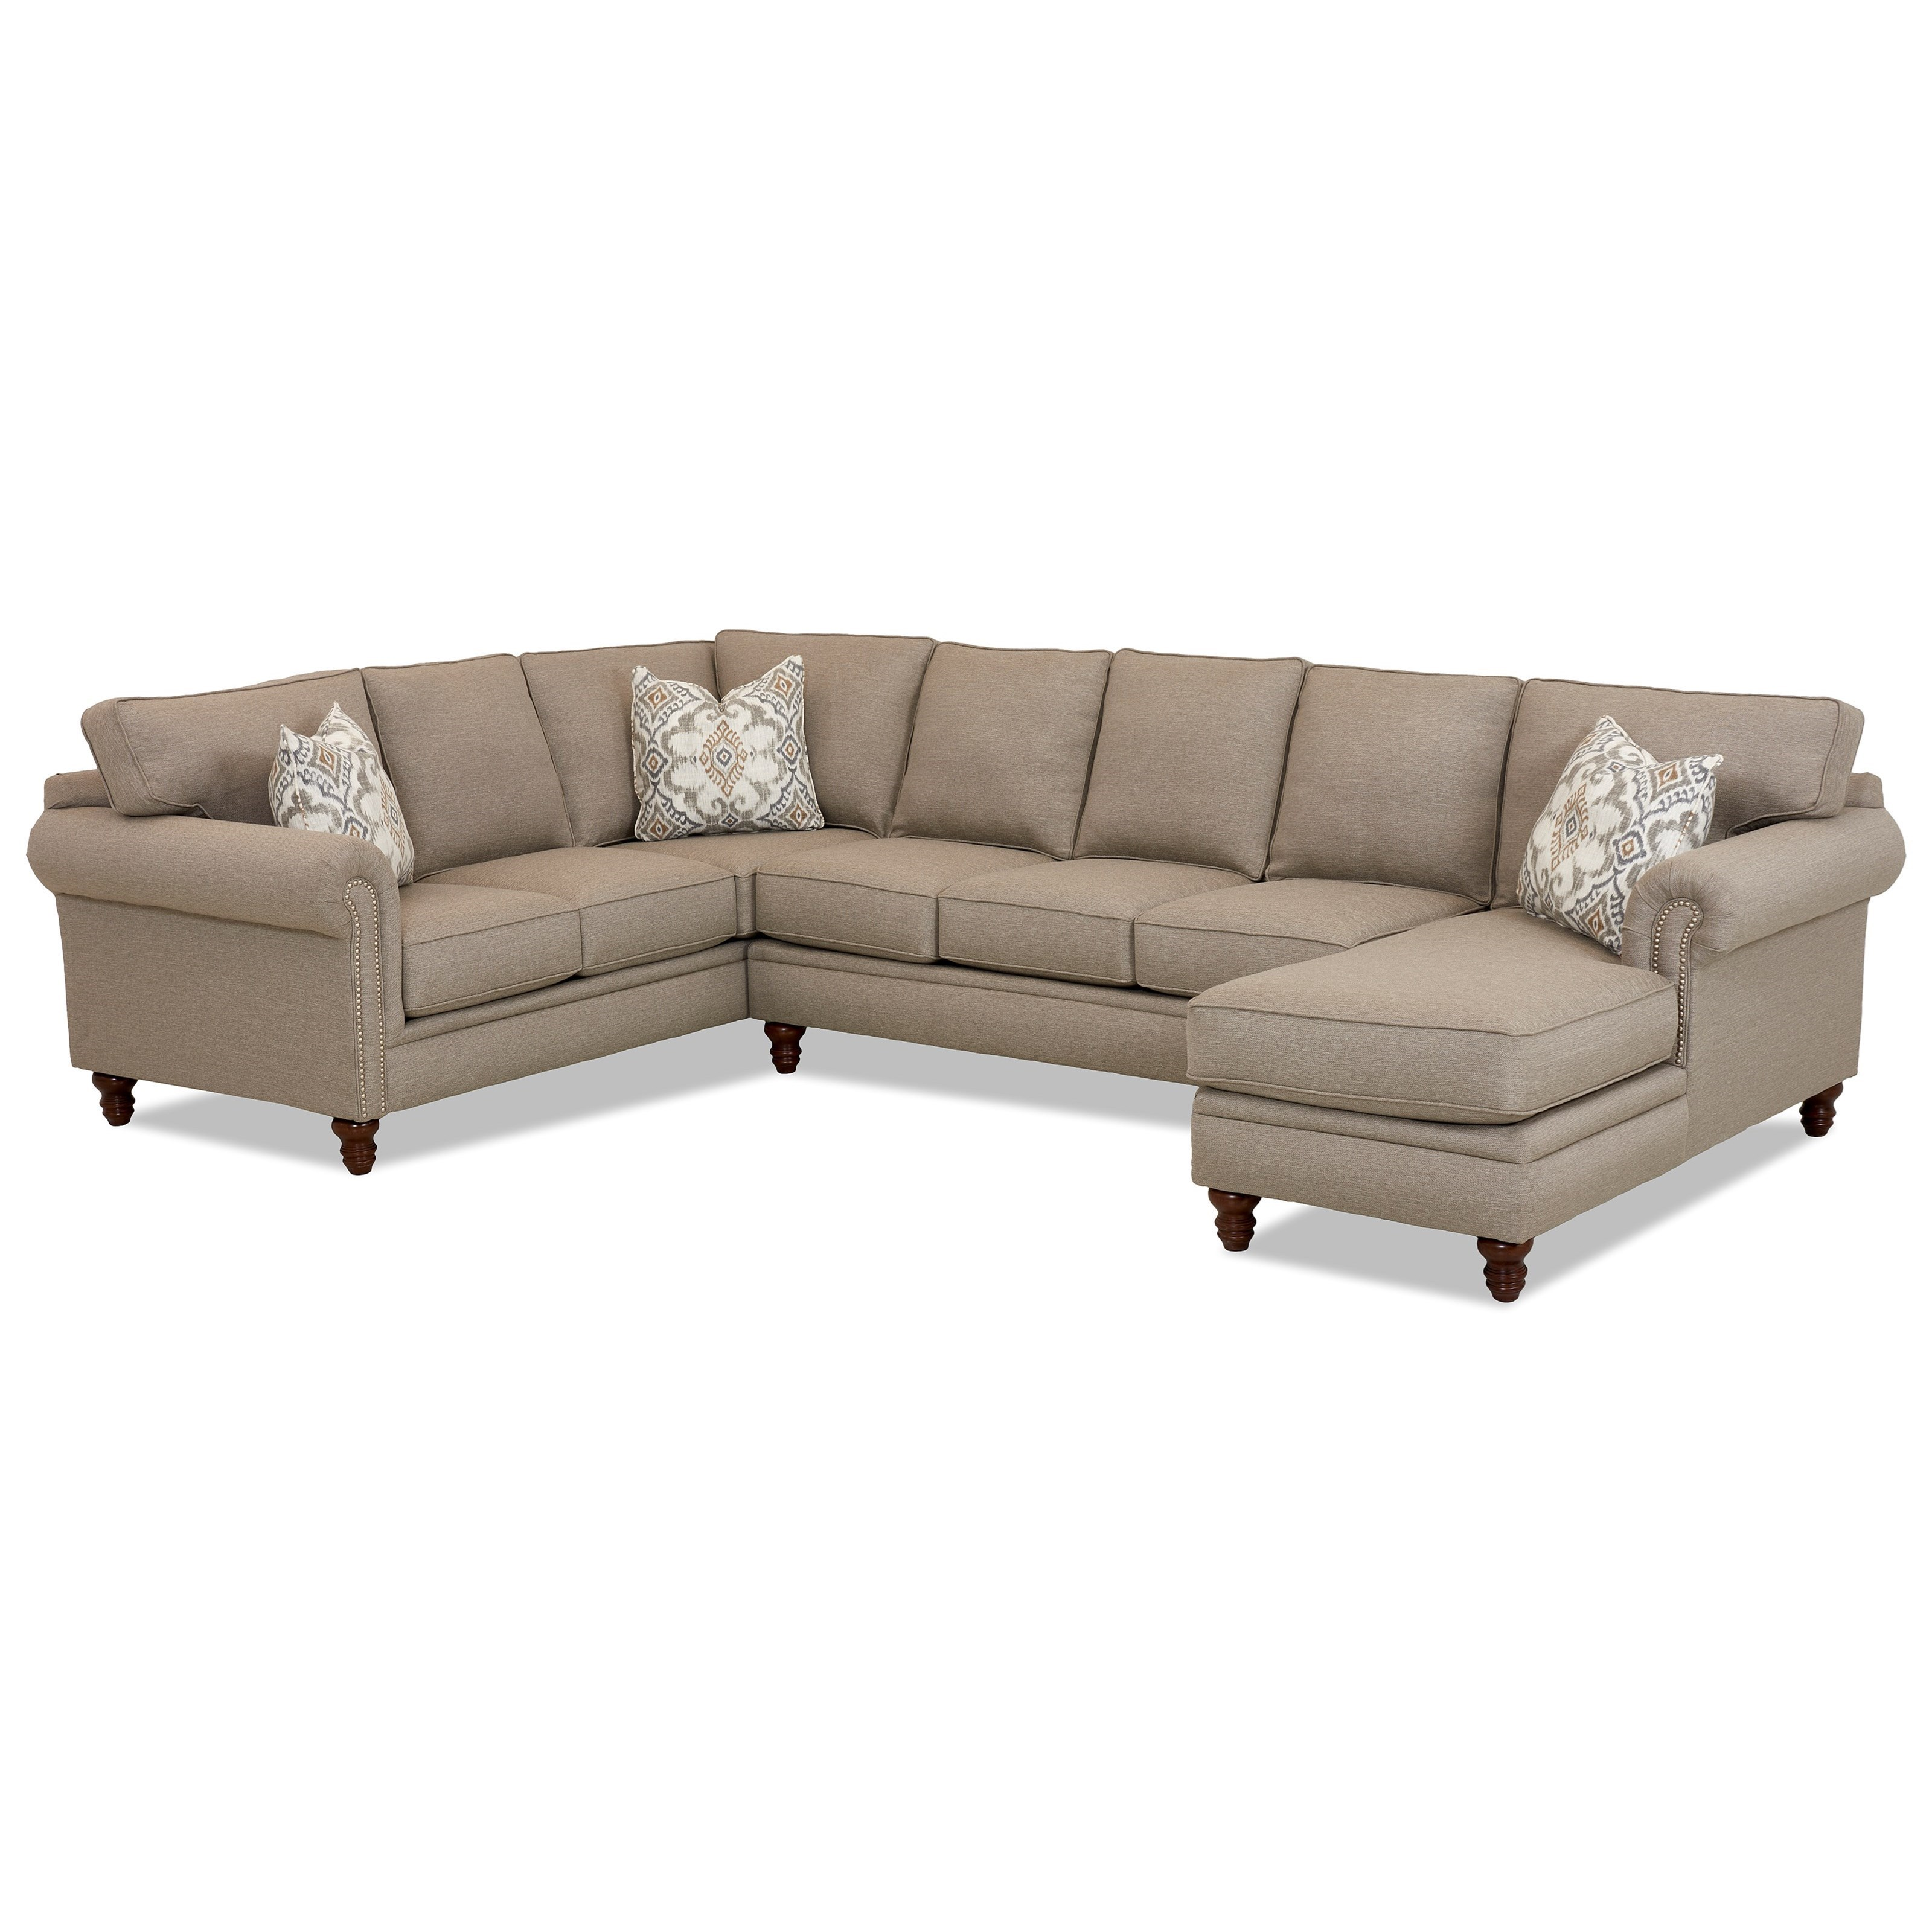 Klaussner Carter Three Piece Sectional Sofa W/ RAF Chaise And Nailhead Trim